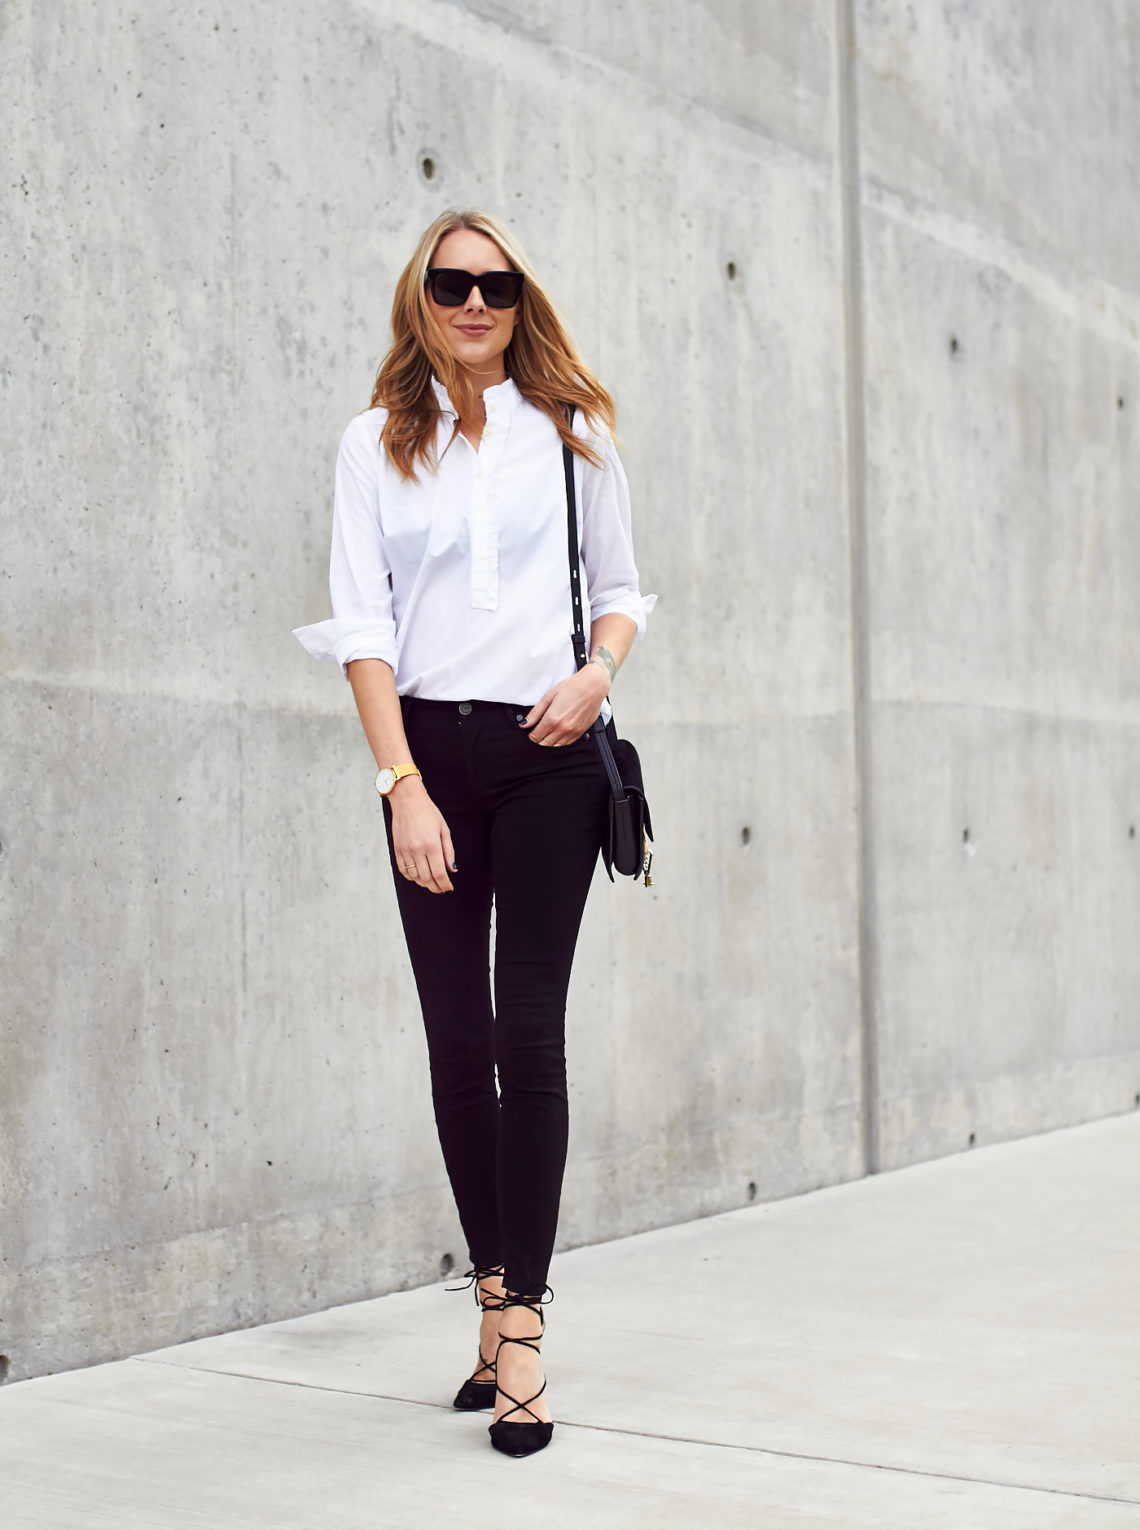 fashion-jackson-loft-black-skinny-jeans-loft-white-shirt